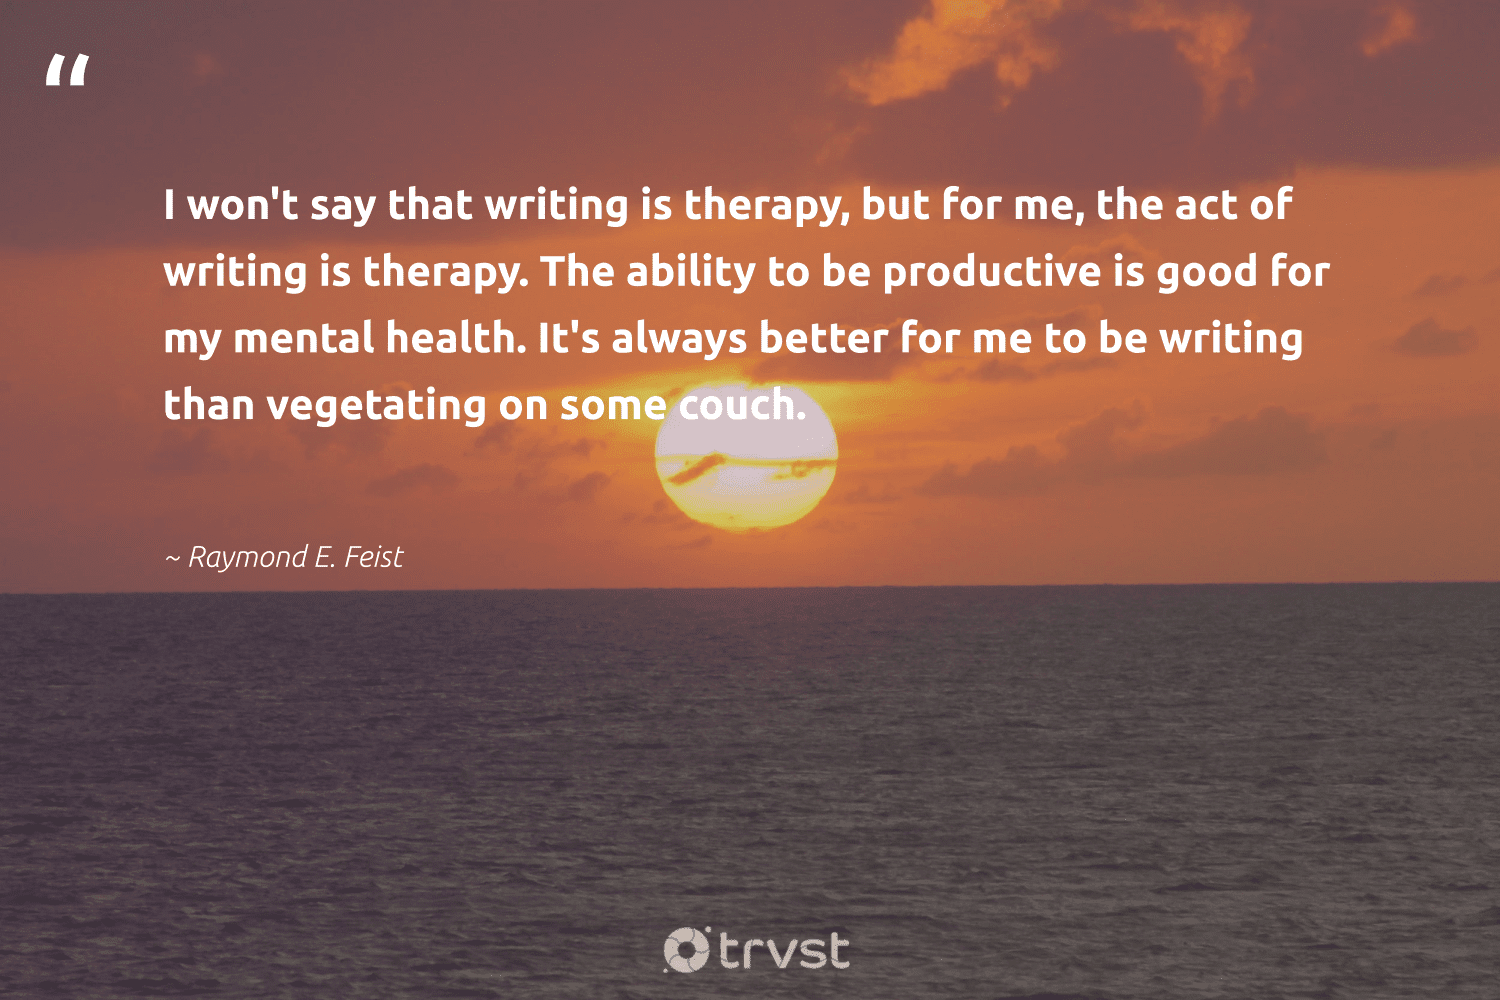 """""""I won't say that writing is therapy, but for me, the act of writing is therapy. The ability to be productive is good for my mental health. It's always better for me to be writing than vegetating on some couch.""""  - Raymond E. Feist #trvst #quotes #mentalhealth #health #productive #stampoutthestigma #togetherwecan #changemakers #socialimpact #mentalhealthawareness #begreat #nevergiveup"""